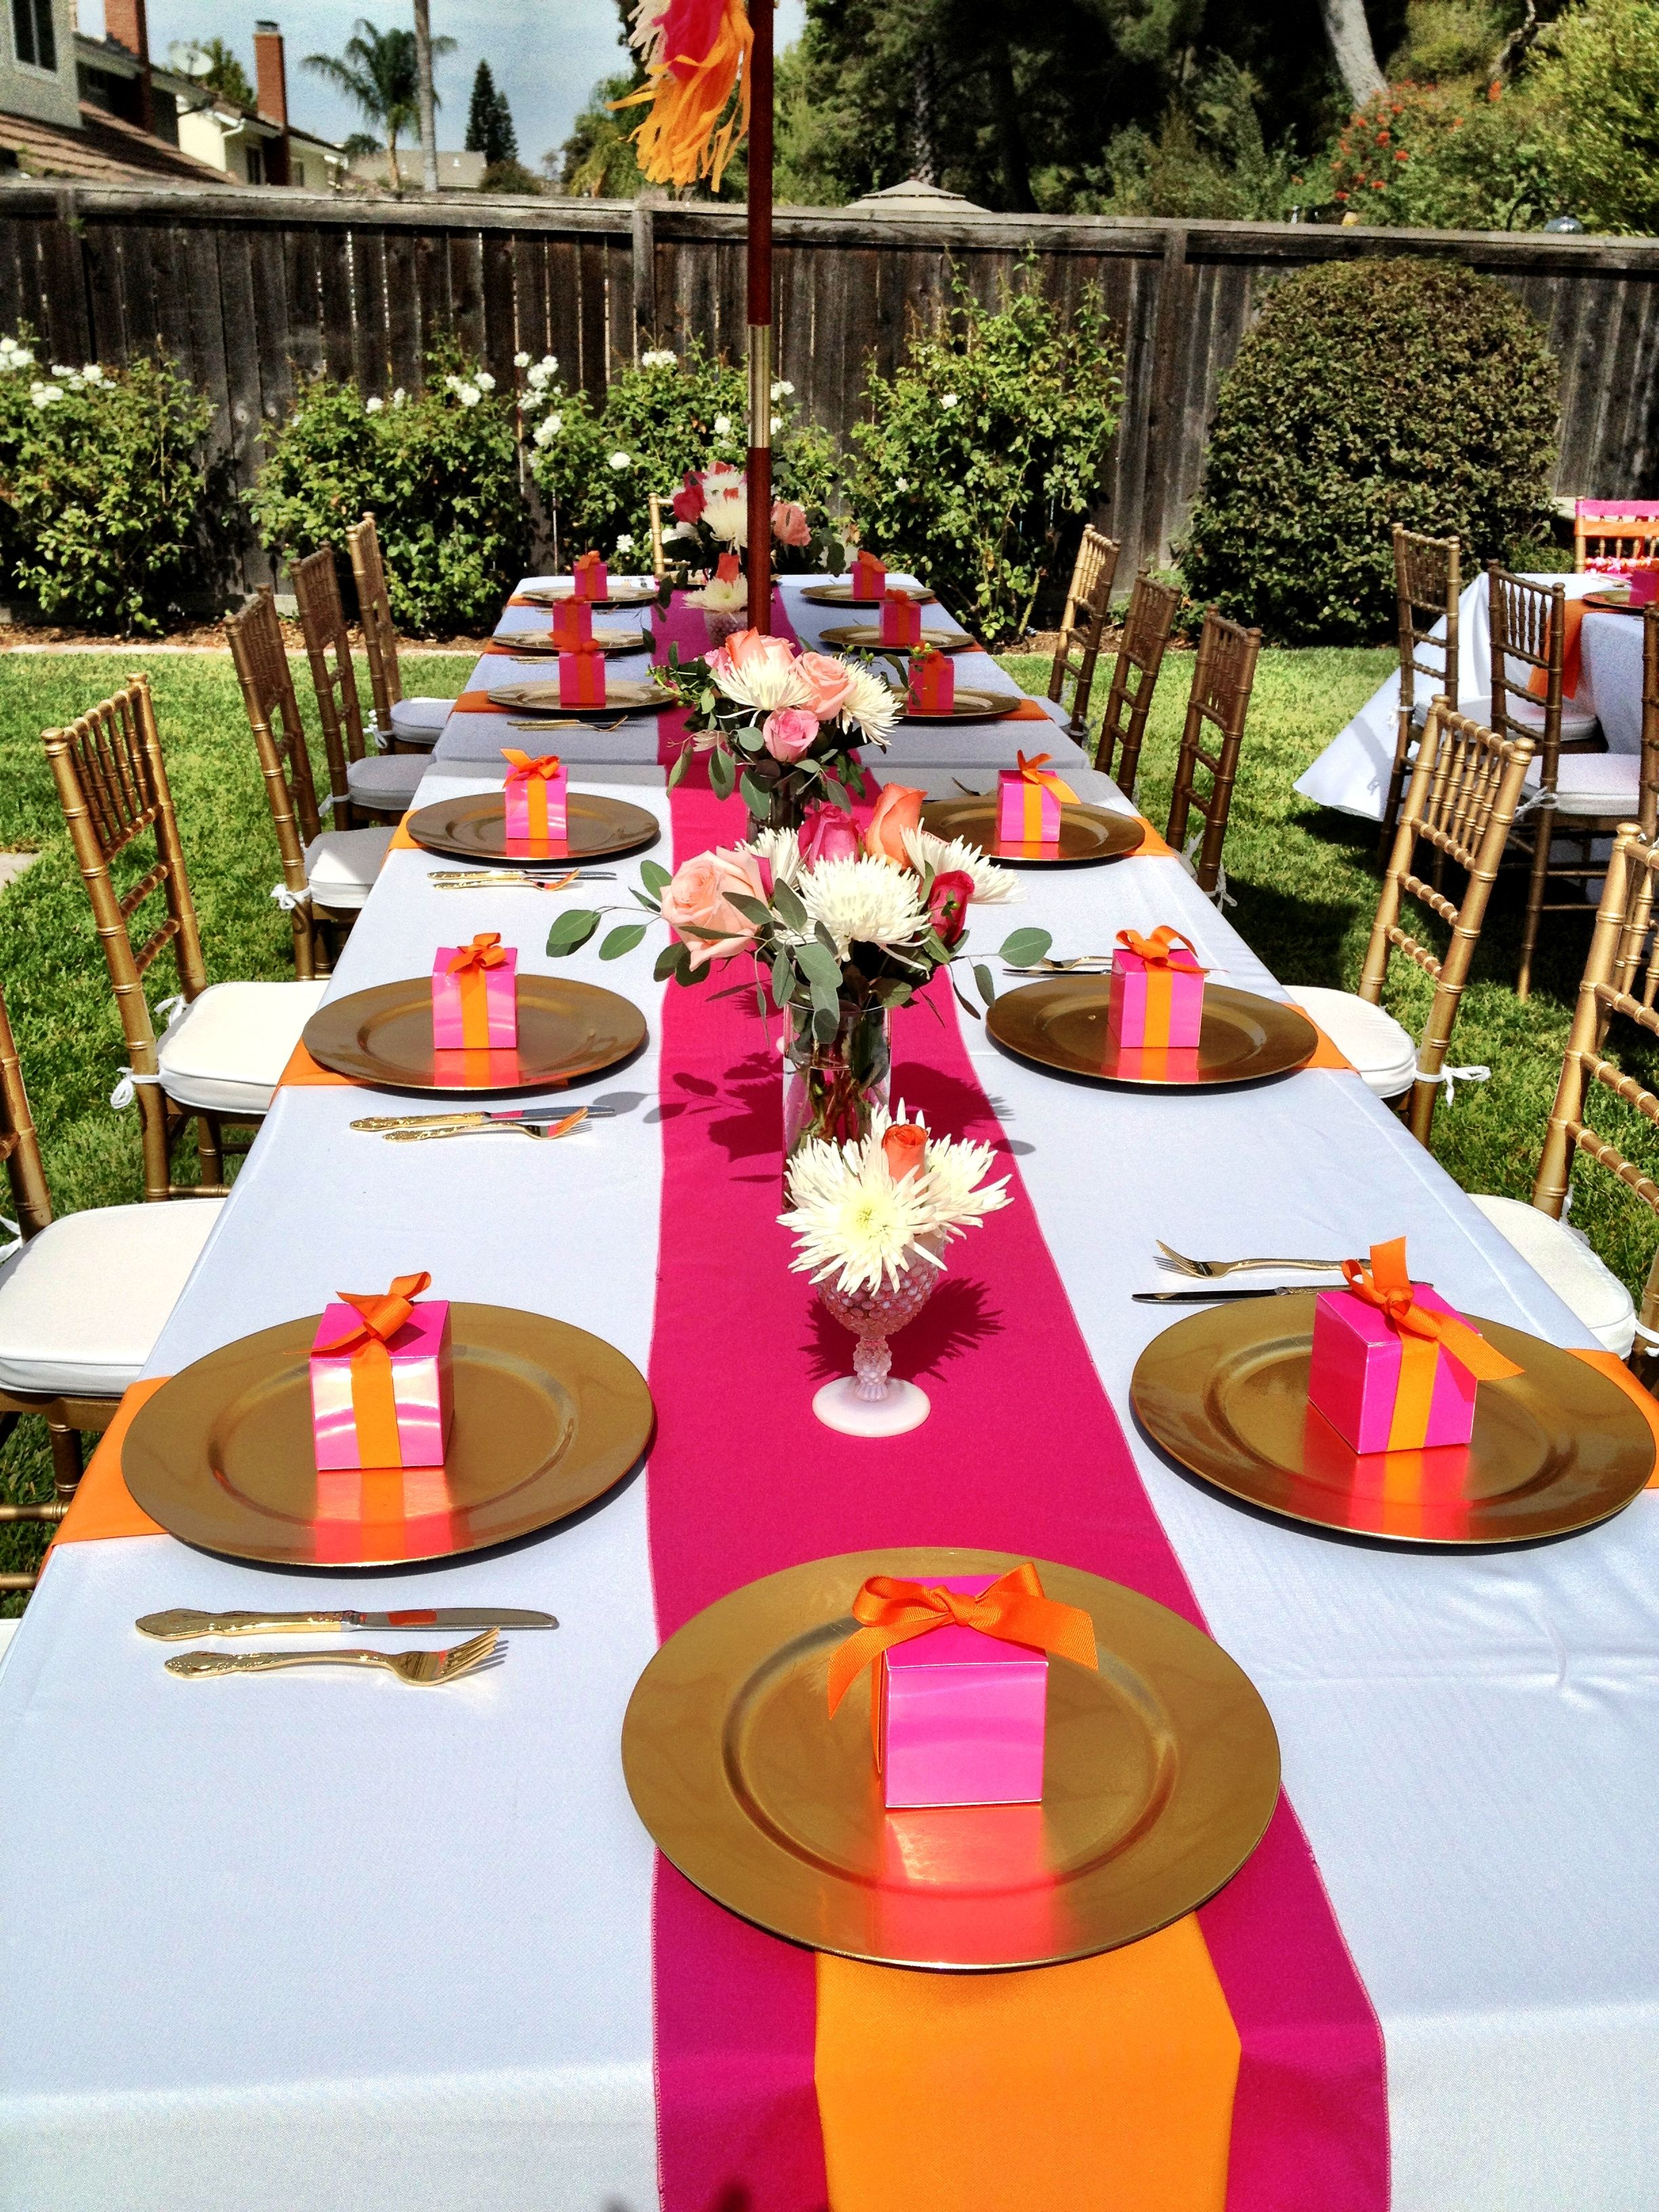 Wondrous Bright Pink And Orange Bridal Shower Table Parties Styled Home Interior And Landscaping Ologienasavecom